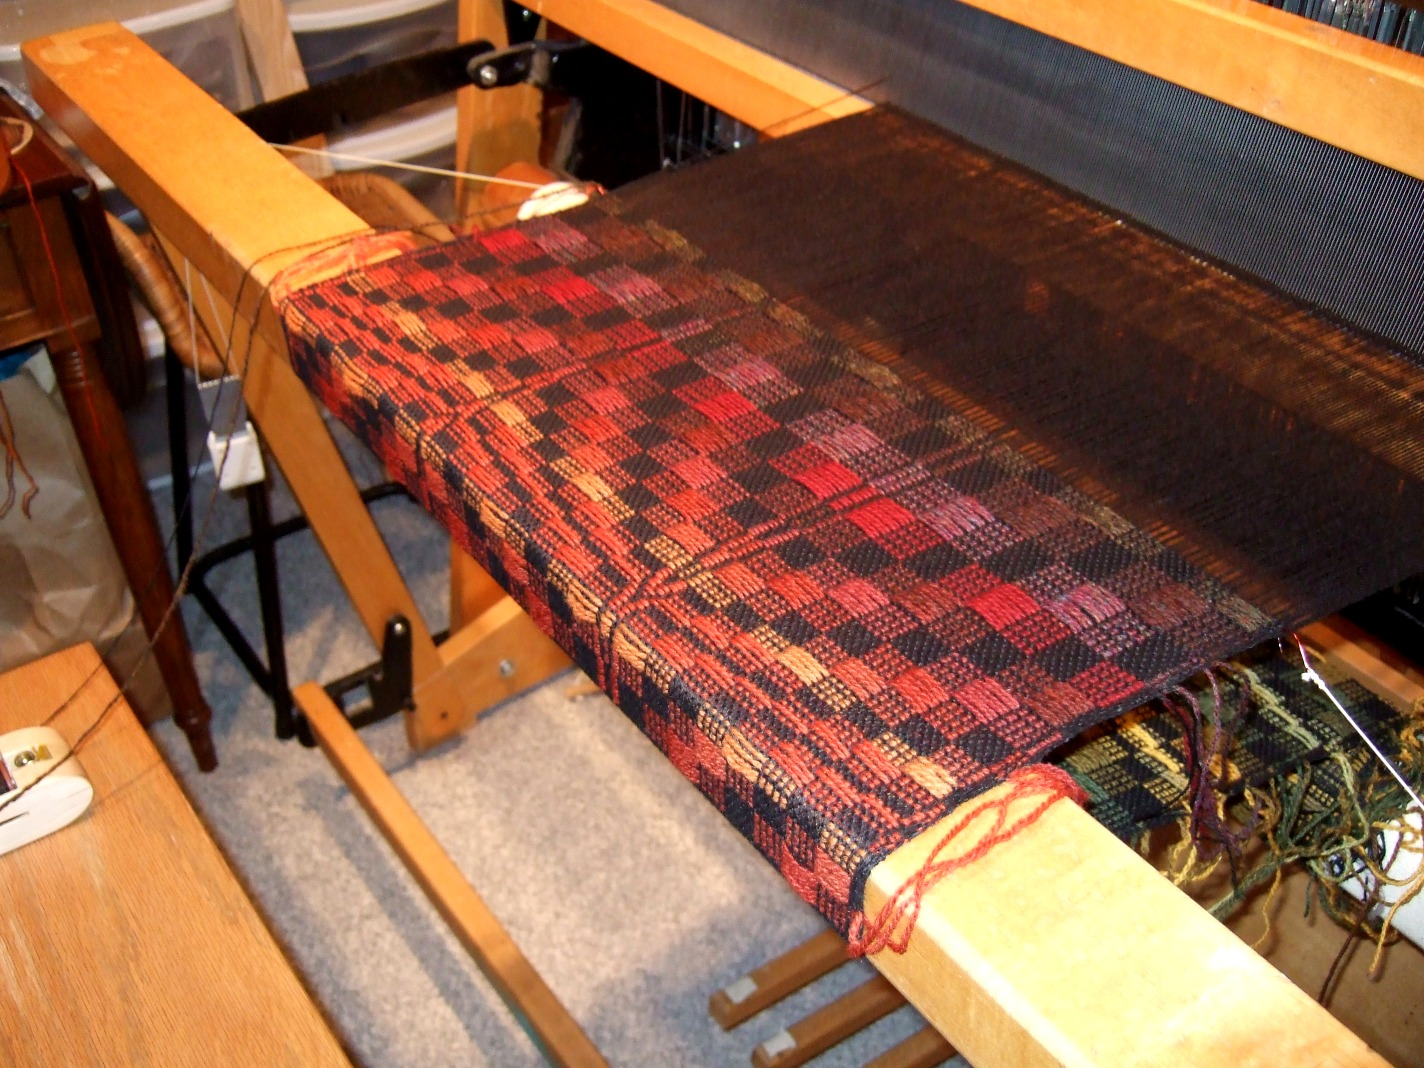 """John Madison"" mat 2, treadling II from M.P. Davison, in reds"